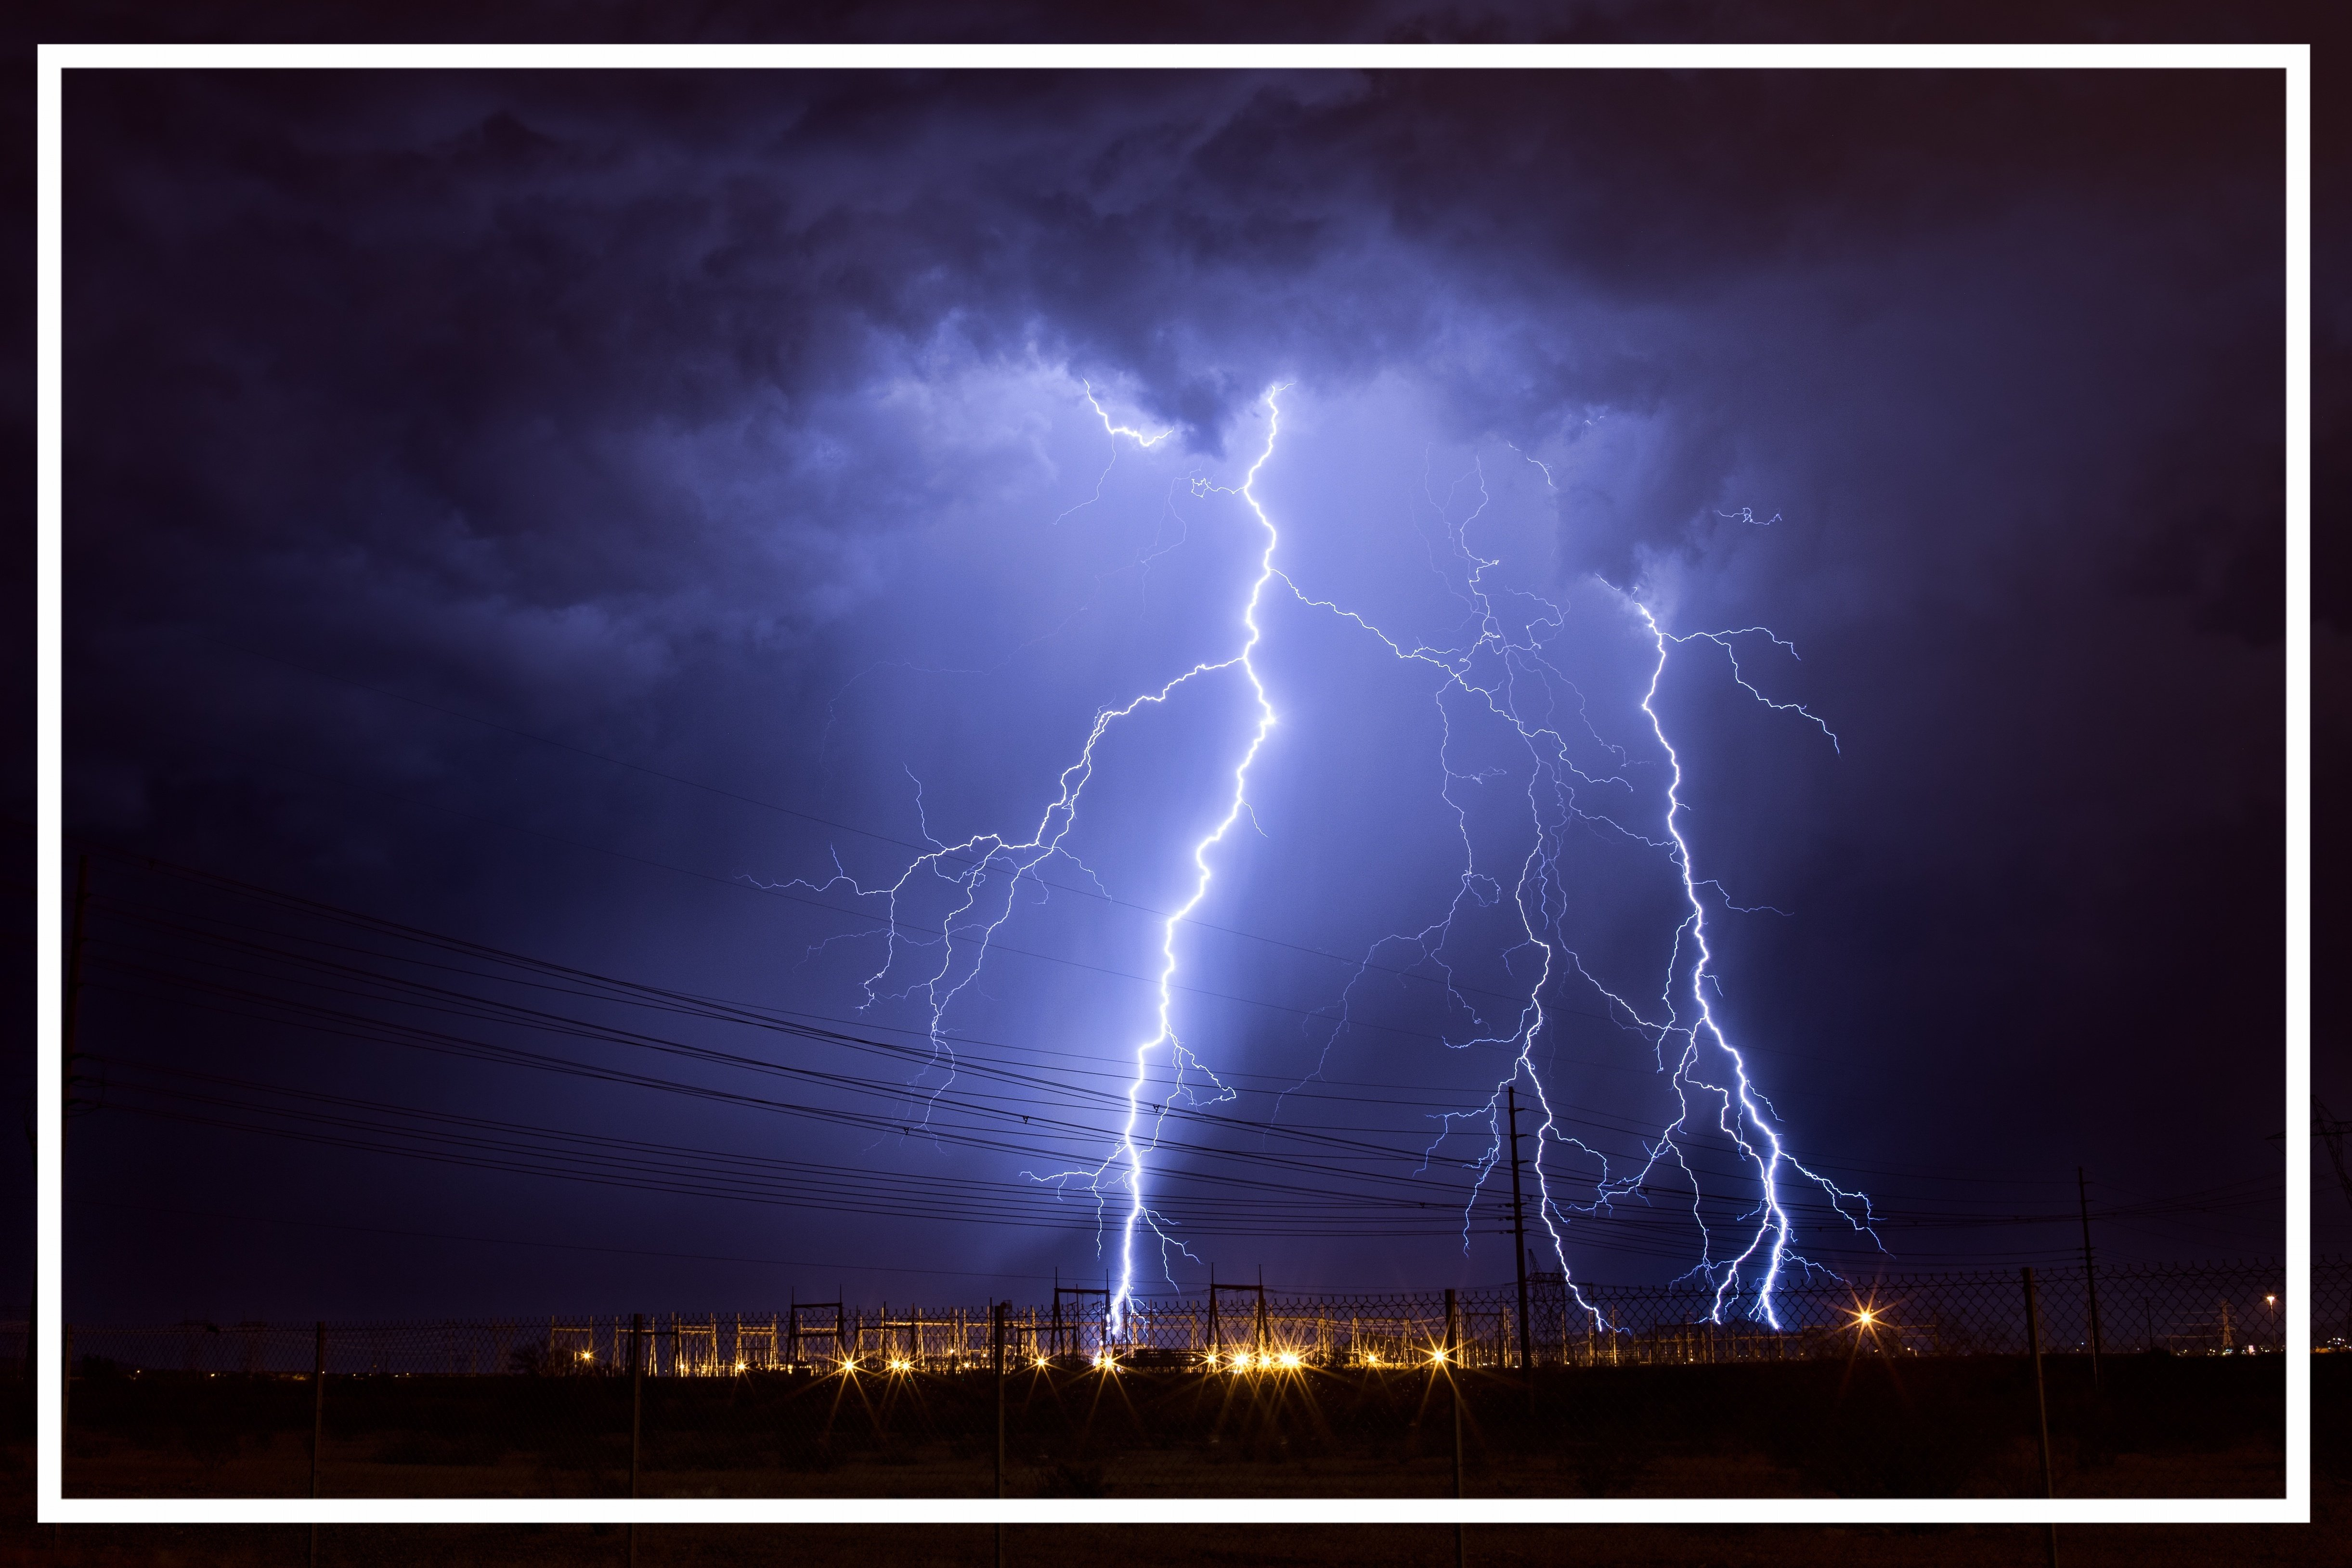 Is your business prepared for power outages?